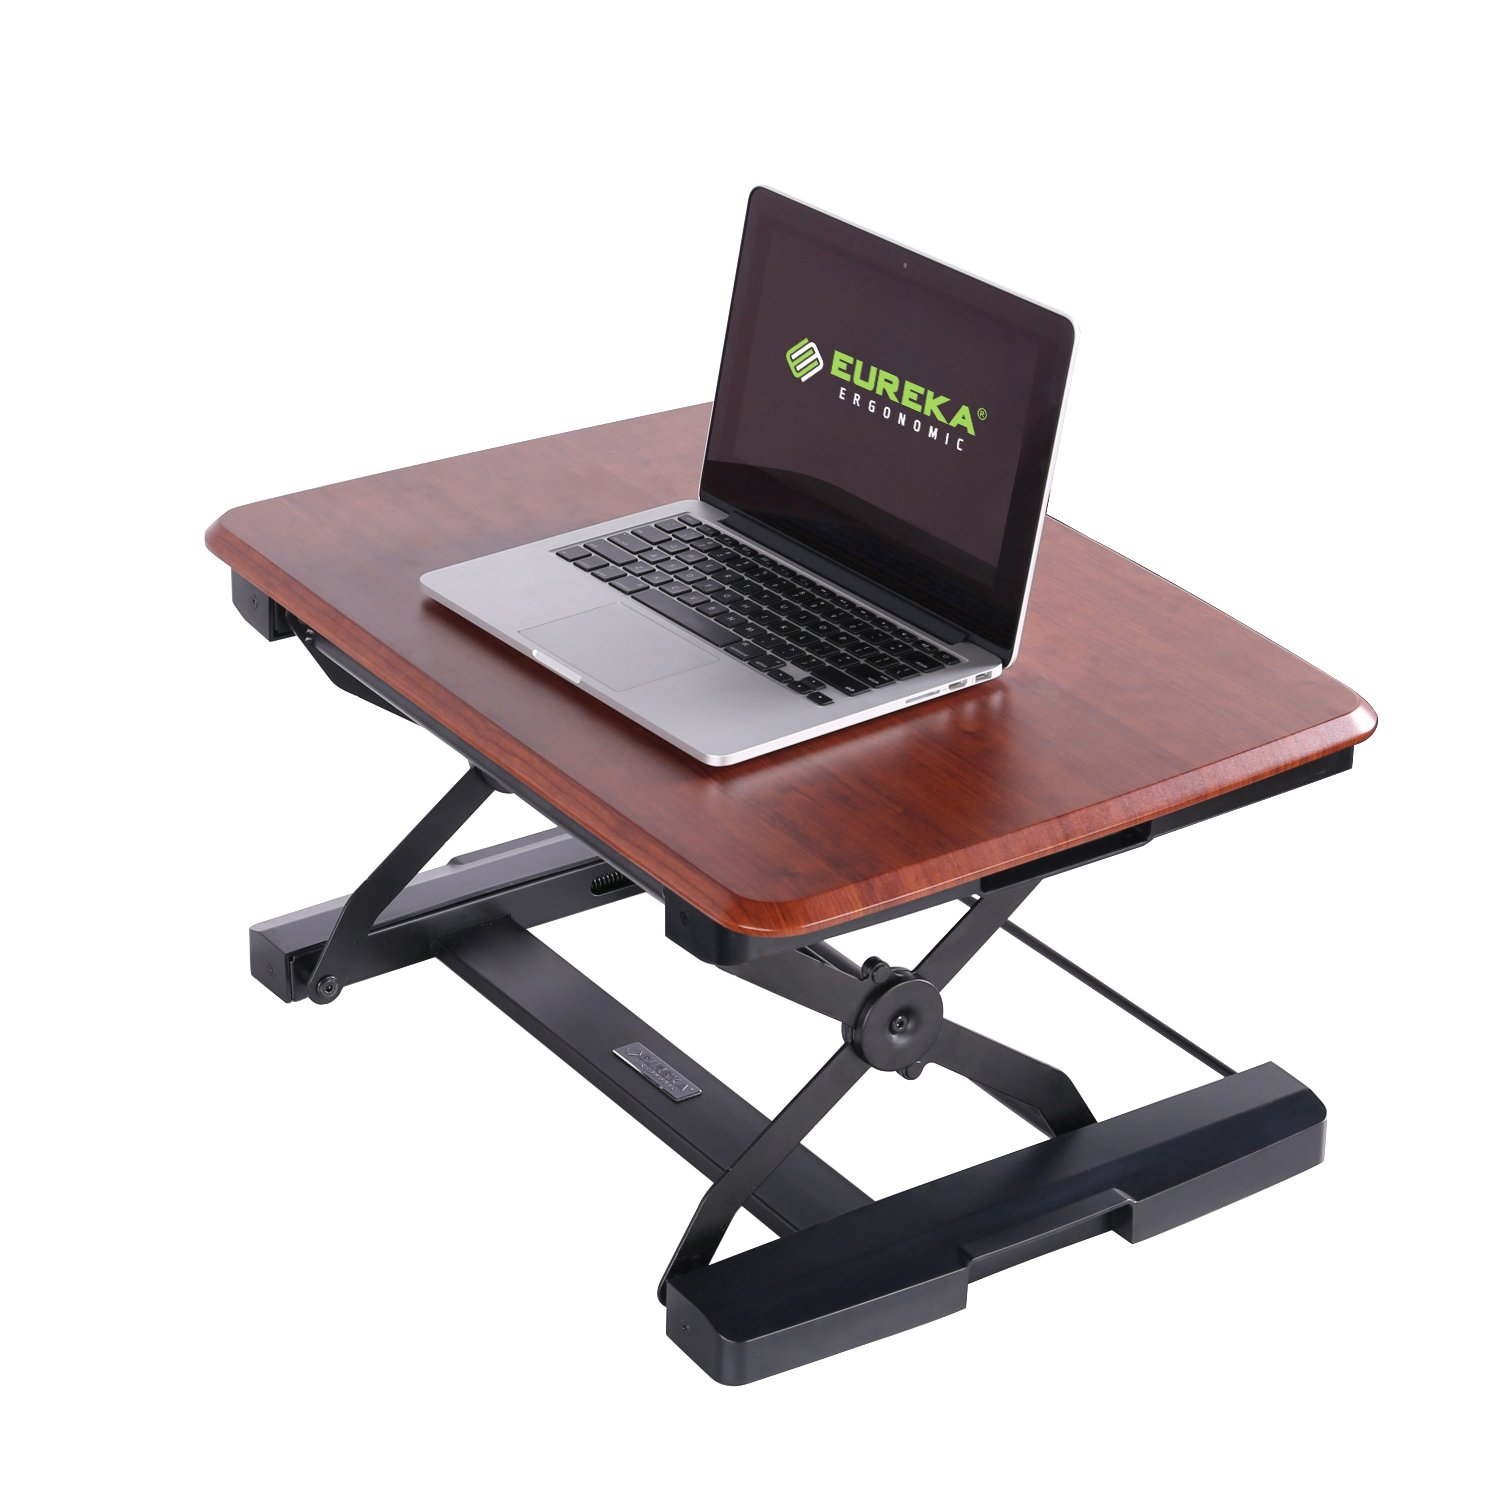 Space Saving Standing Desk Converter, Computer Desk Riser for Laptop and Monitor, Adjustable Height Desk for Office/ Home/ Meeting, 26'' Cherry by Eureka Ergonomic